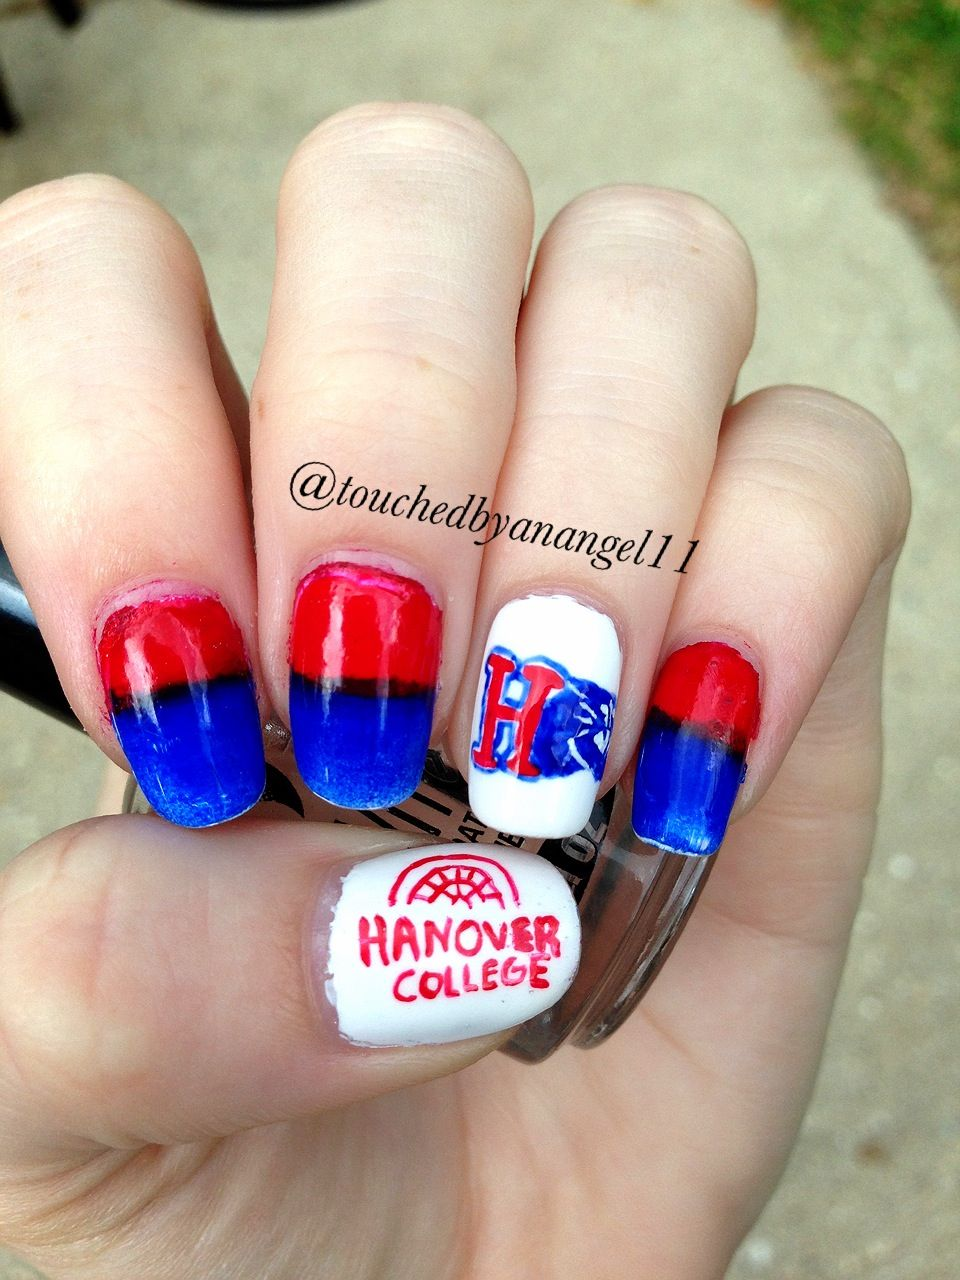 Hanover college nails :)   Colleges   Pinterest   College nails and ...